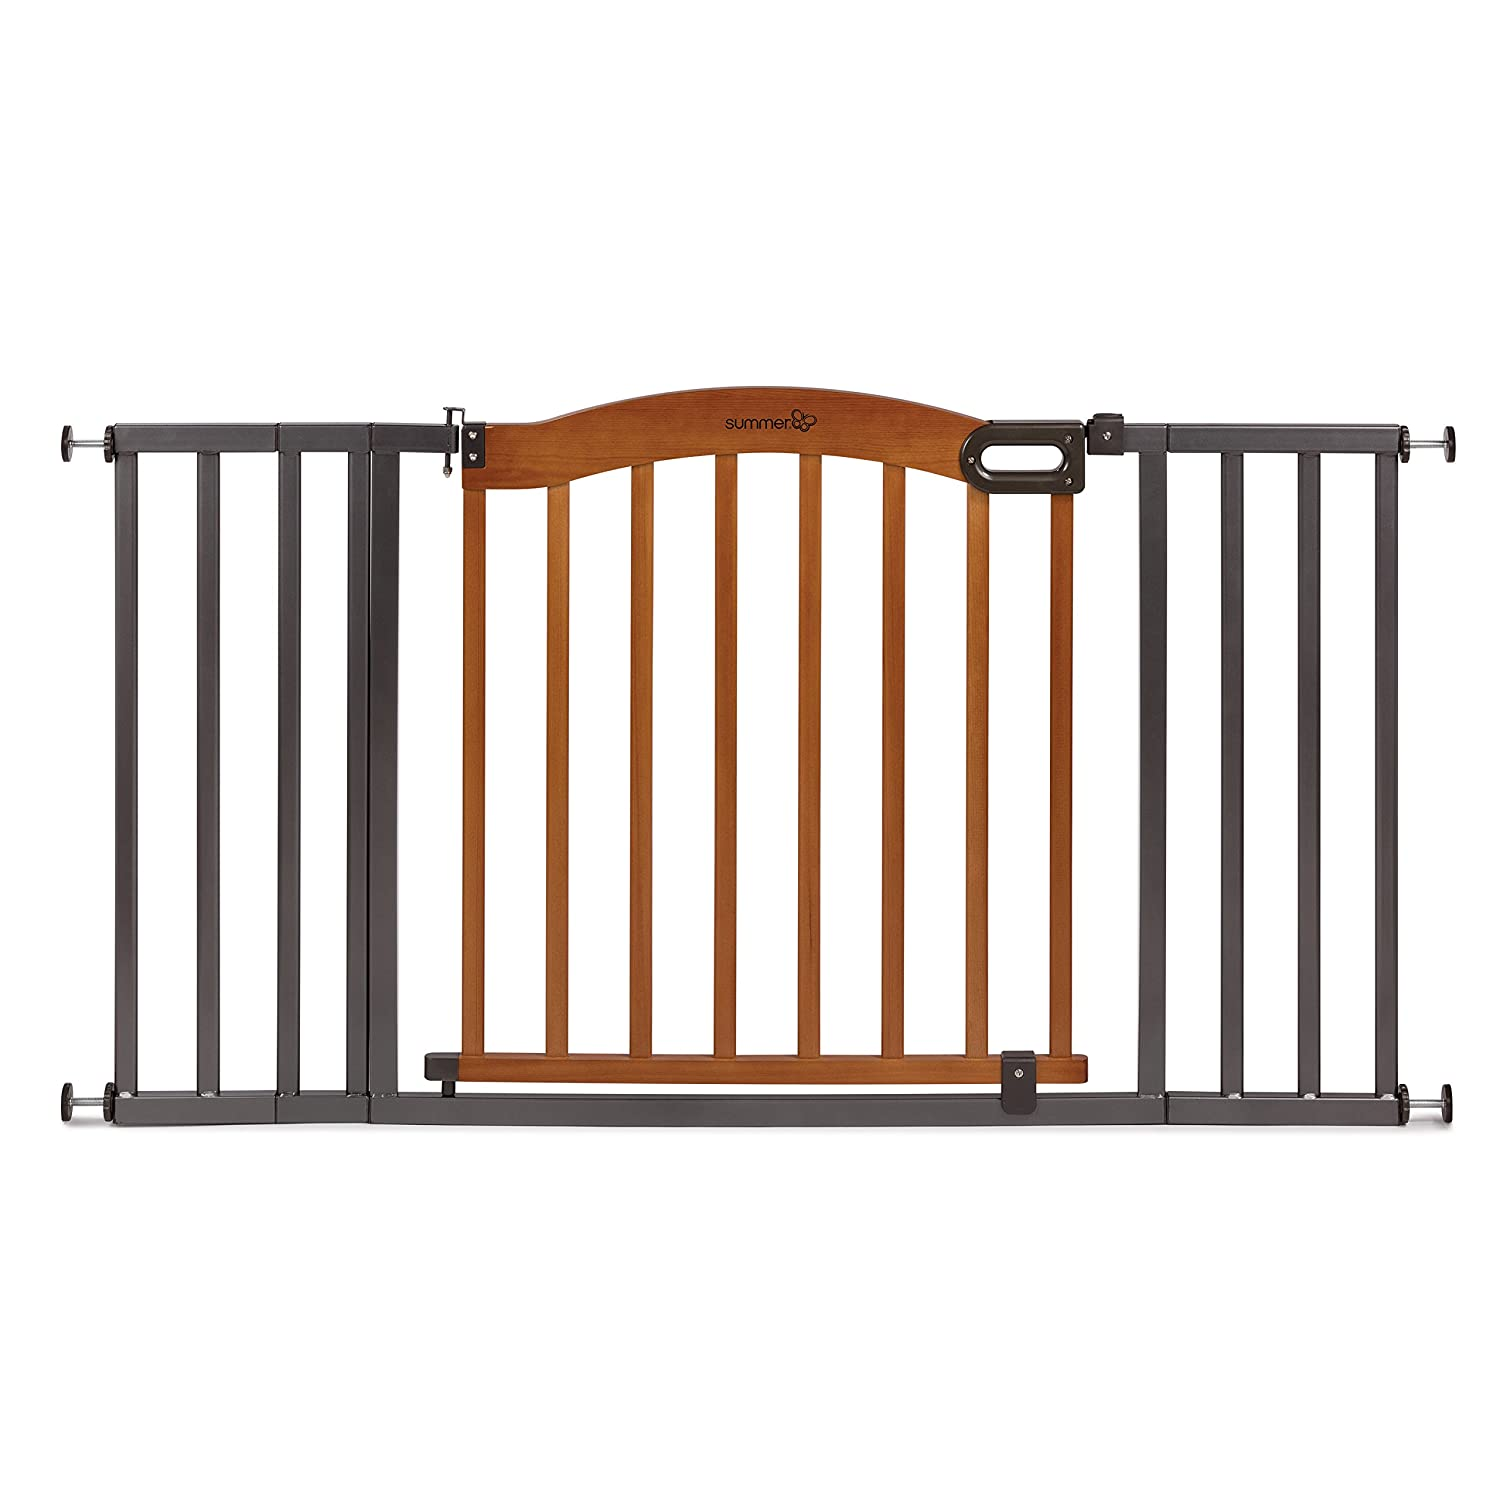 Summer Infant Decorative Wood & Metal 5 Foot Pressure Mounted Gate, Brown/Black 27070